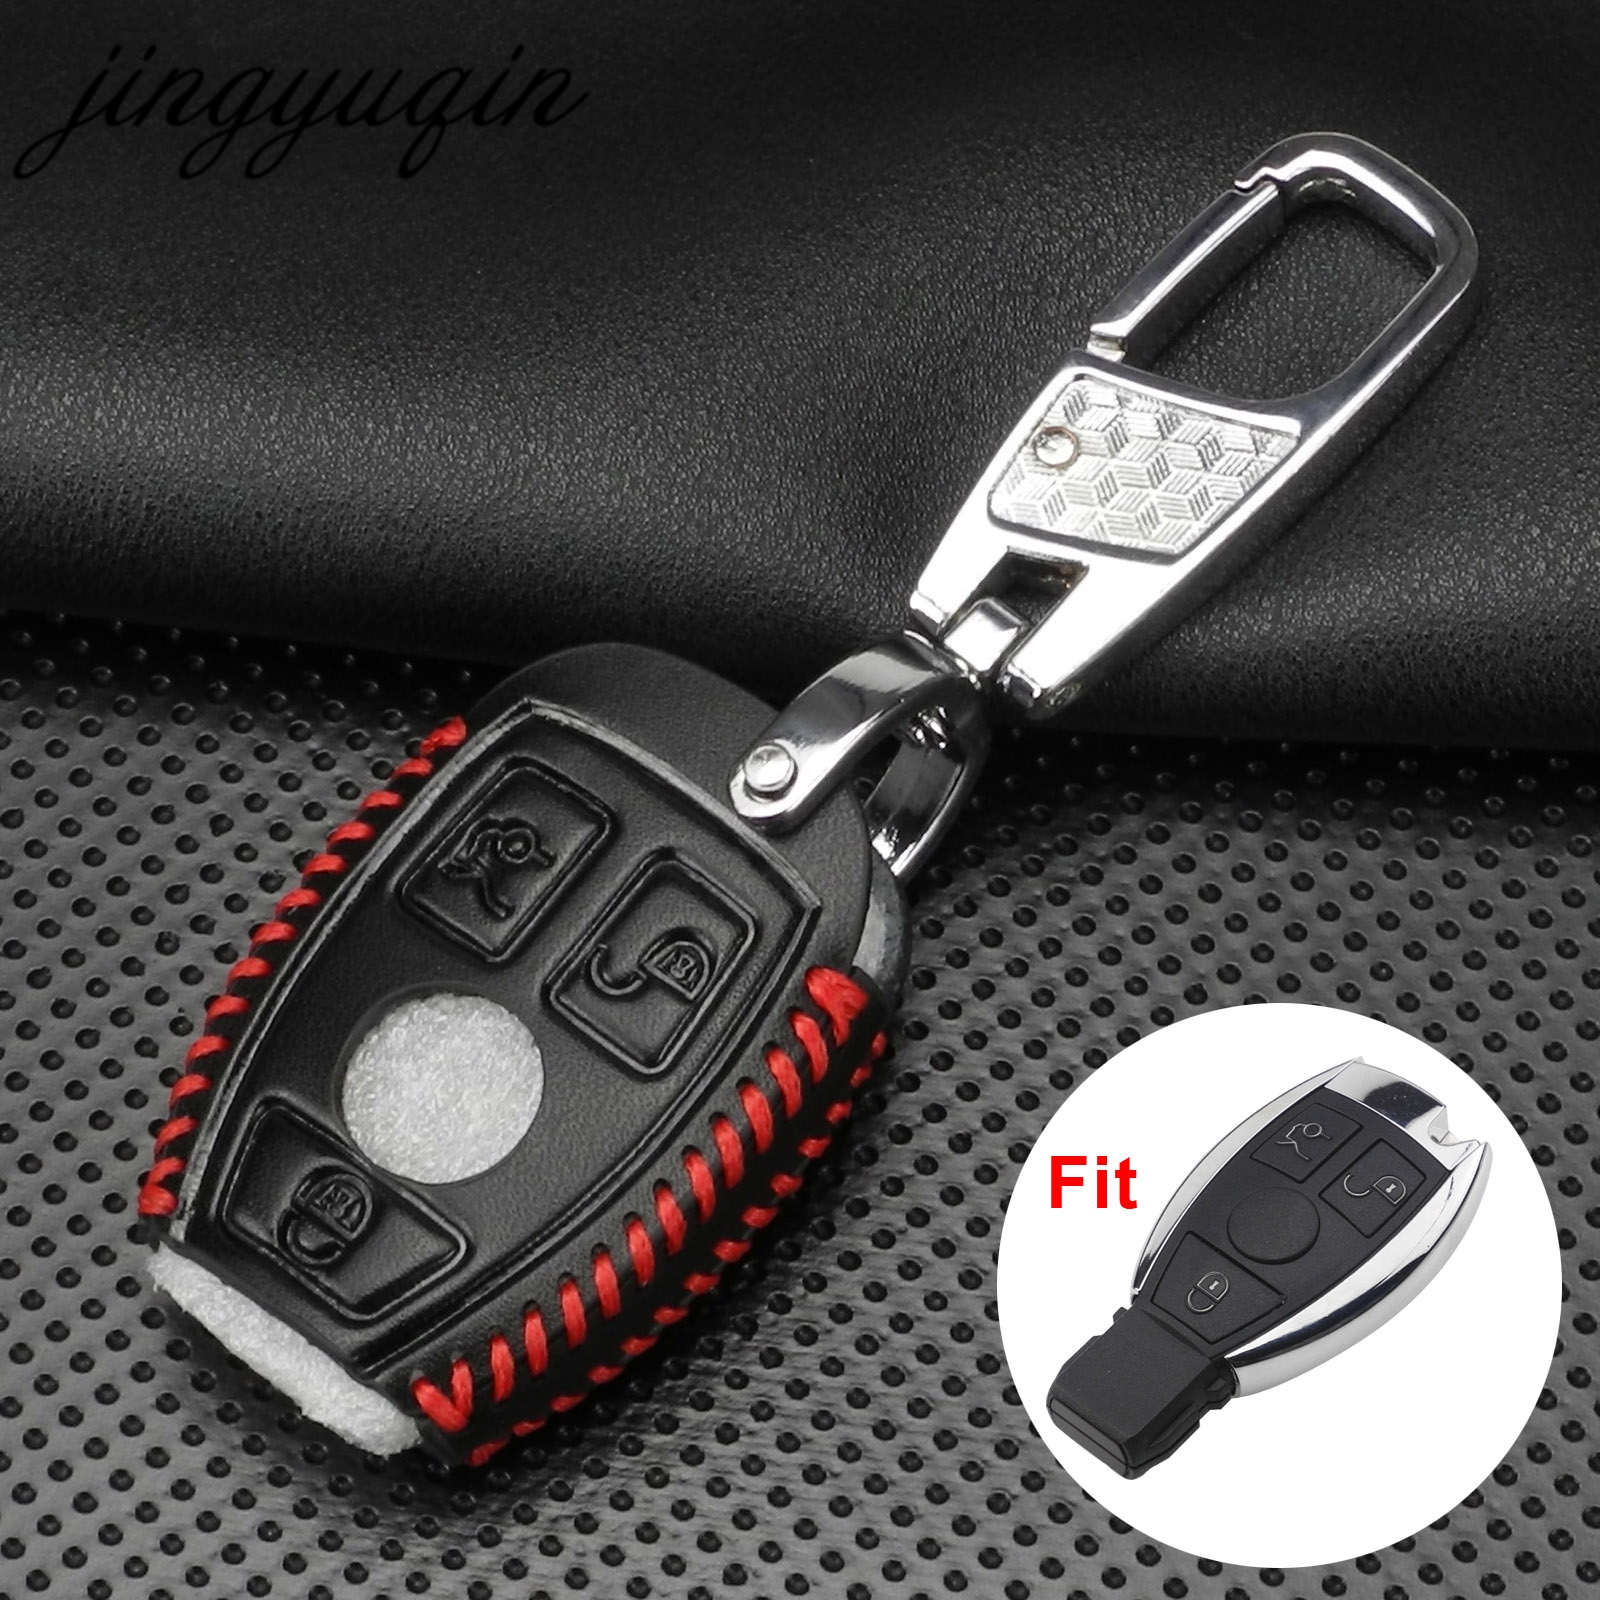 jingyuqin Leather Car Key Bag Case Cover For Mercedes Benz W203 W210 W211 W124 W202 W204 W205 AMG Key Holder Chain Protector image